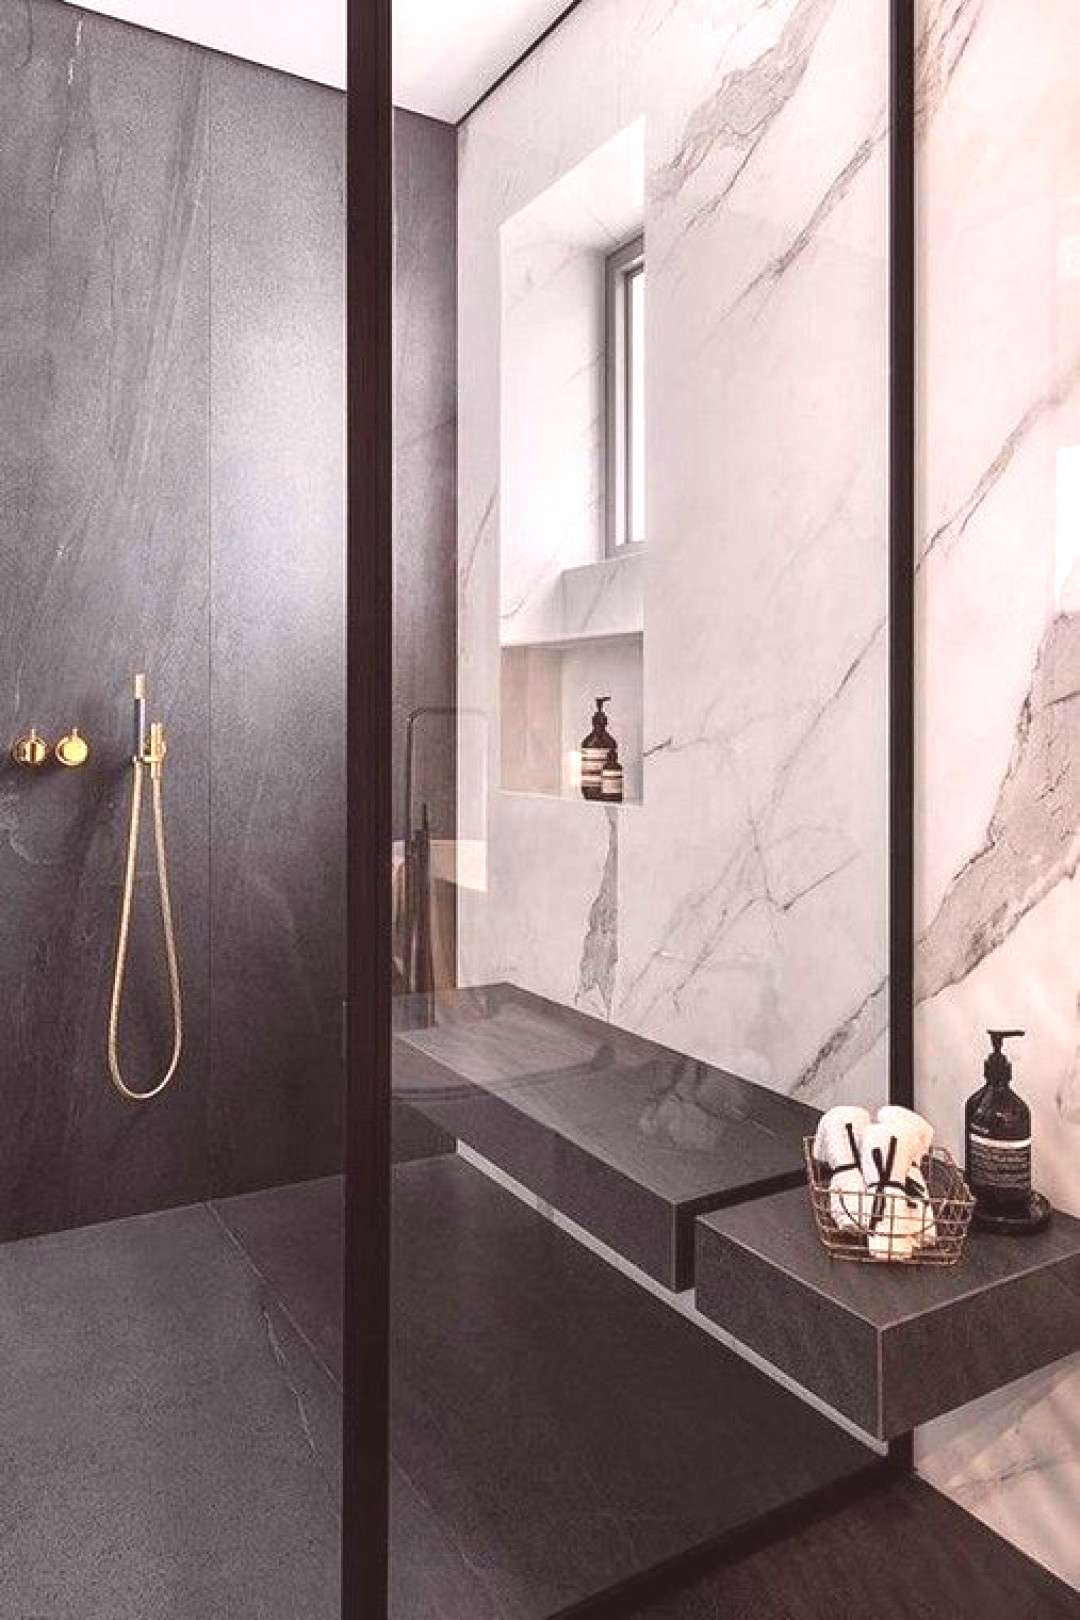 +27 Contemporary Bathrooms Designs To Inspire You  Figure out how to select the proper size tiles